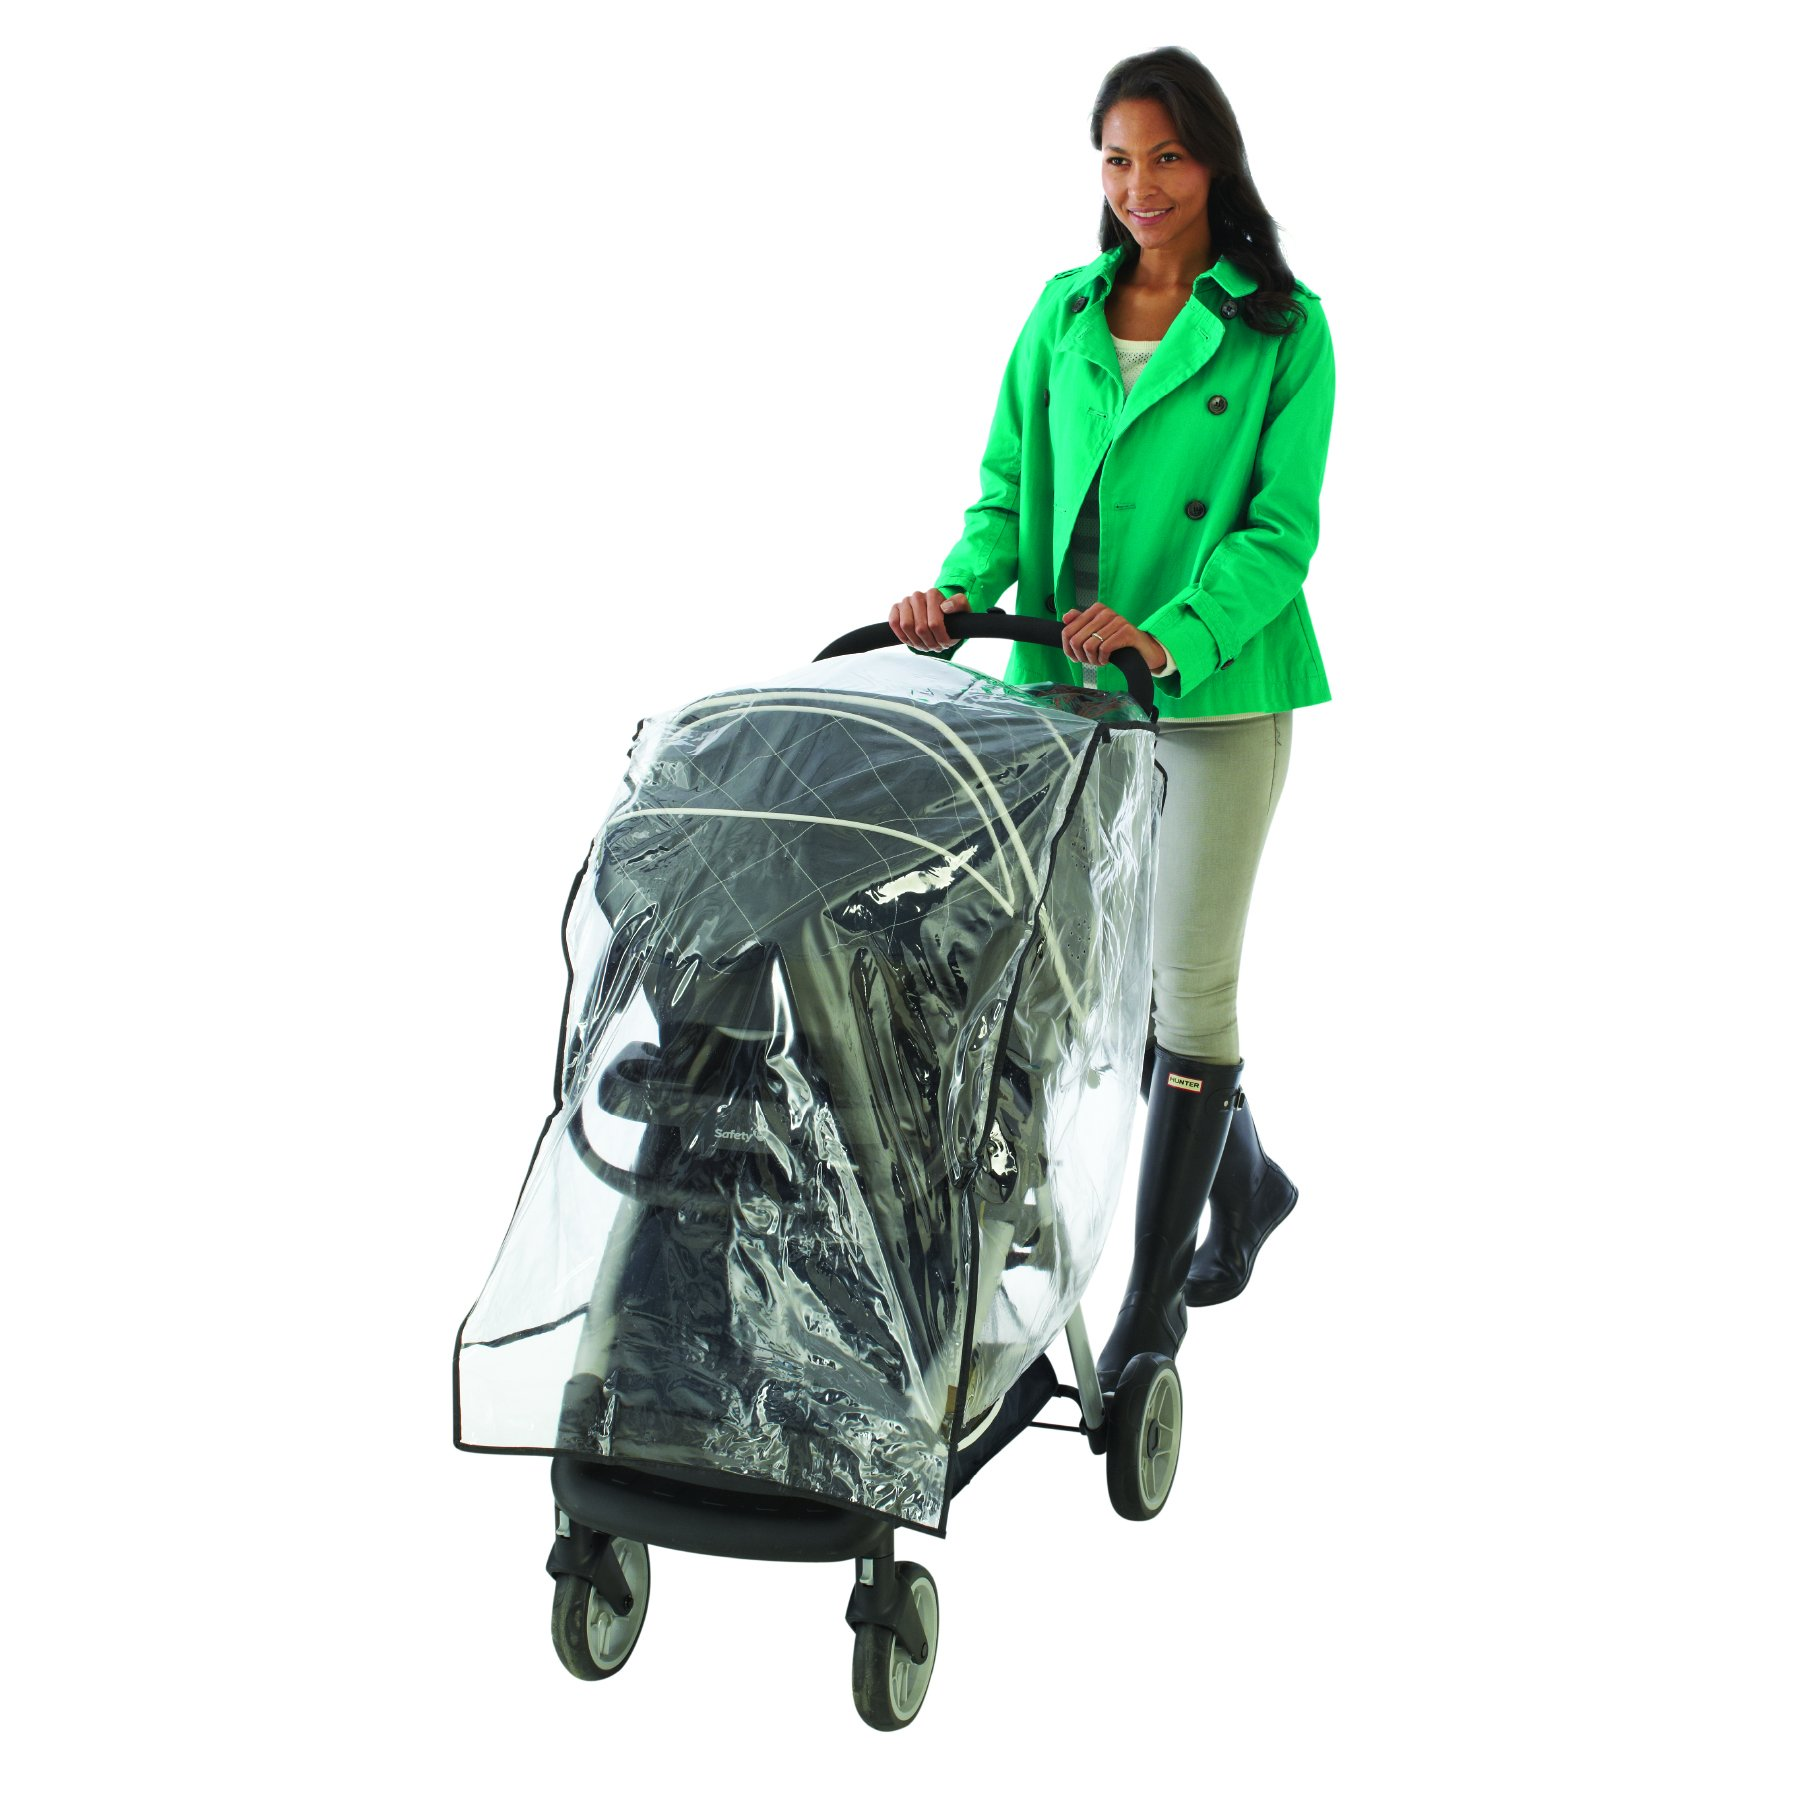 Nuby Travel System Weather Shield, Clear, Plastic